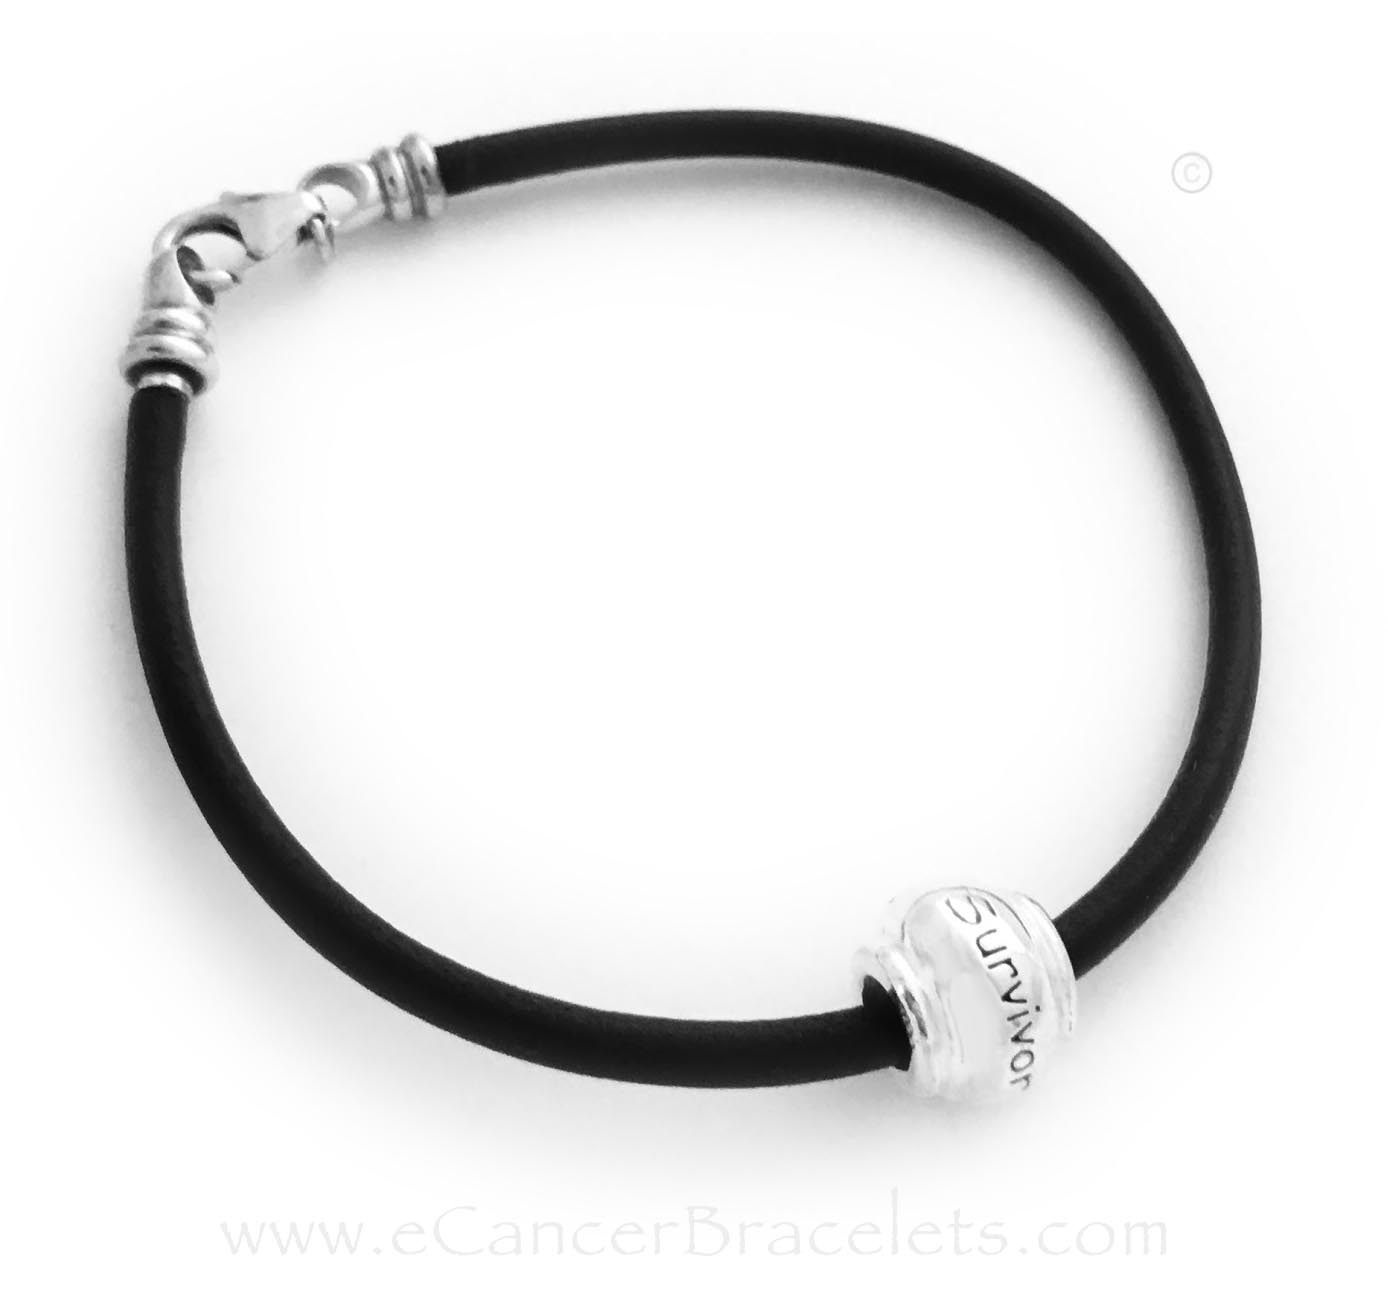 Survivor Bracelet for a man or women - Black Leather bracelet with a large sterling silver SURVIVOR bead.